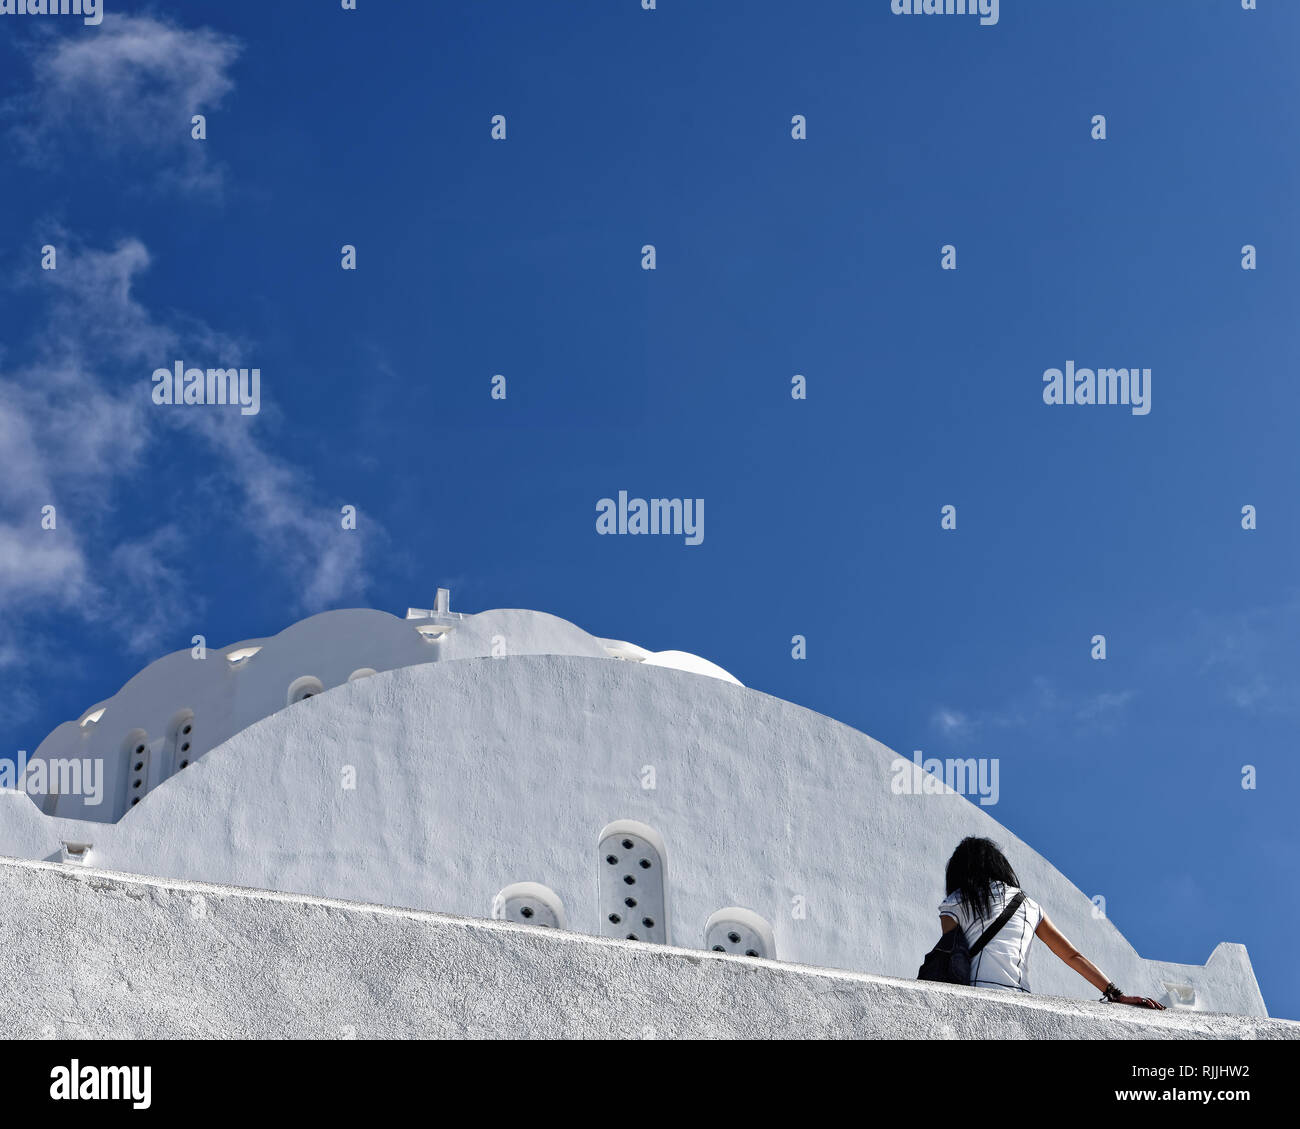 Perspective view from below of an older white typical building, in front of it a person in typical attitude for tourists, blue sky - Location: Greece, - Stock Image